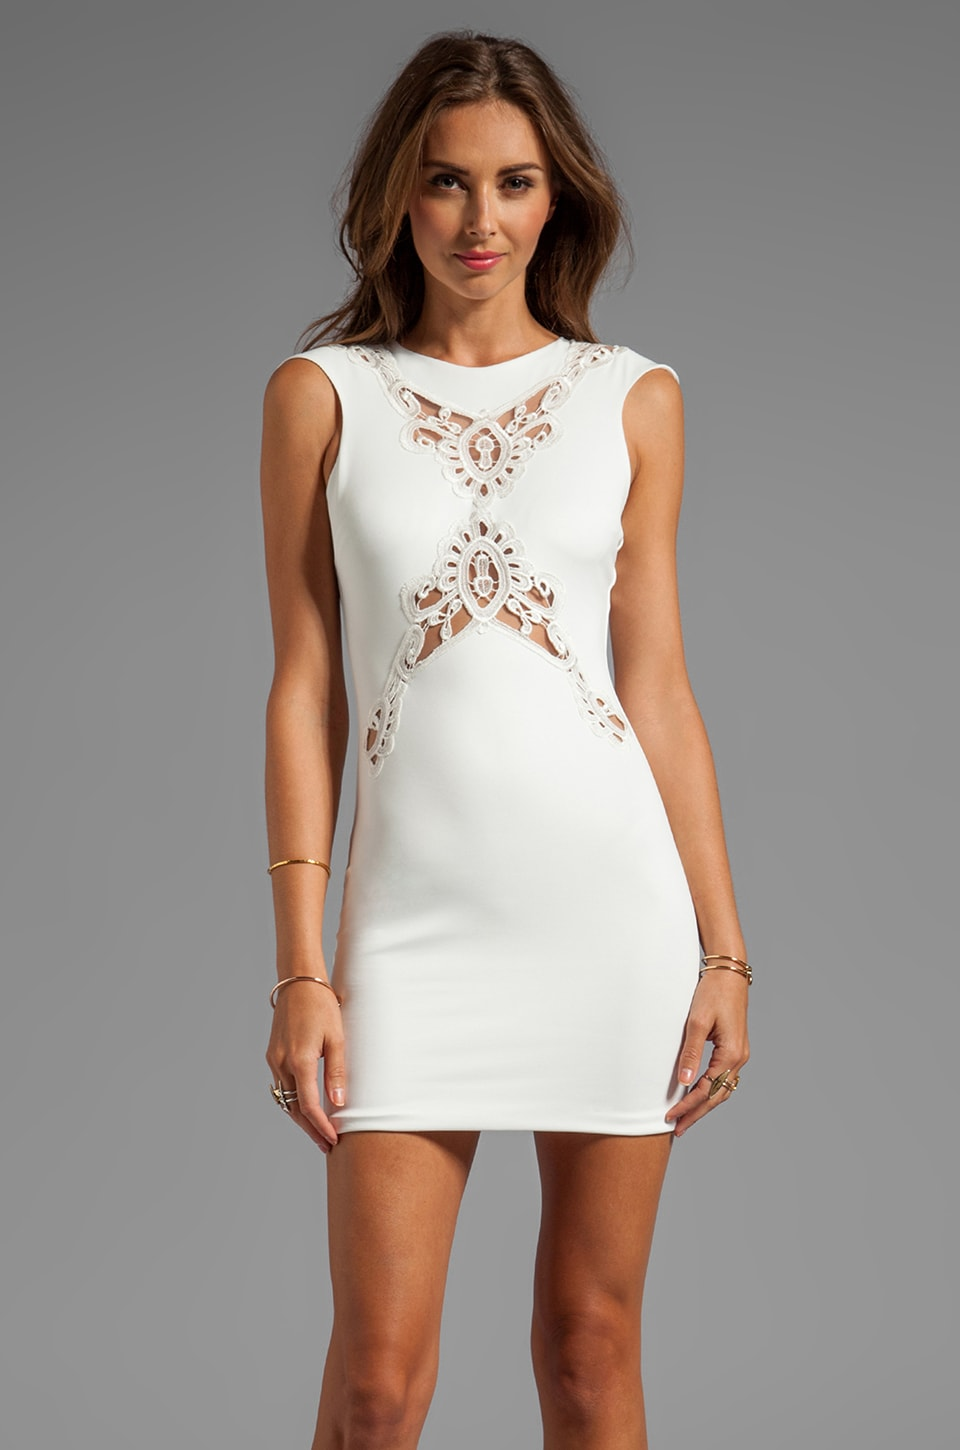 DRESS THE POPULATION Ivy Cap Sleeve Dress with Front and Back Crochet Detail in Ivory